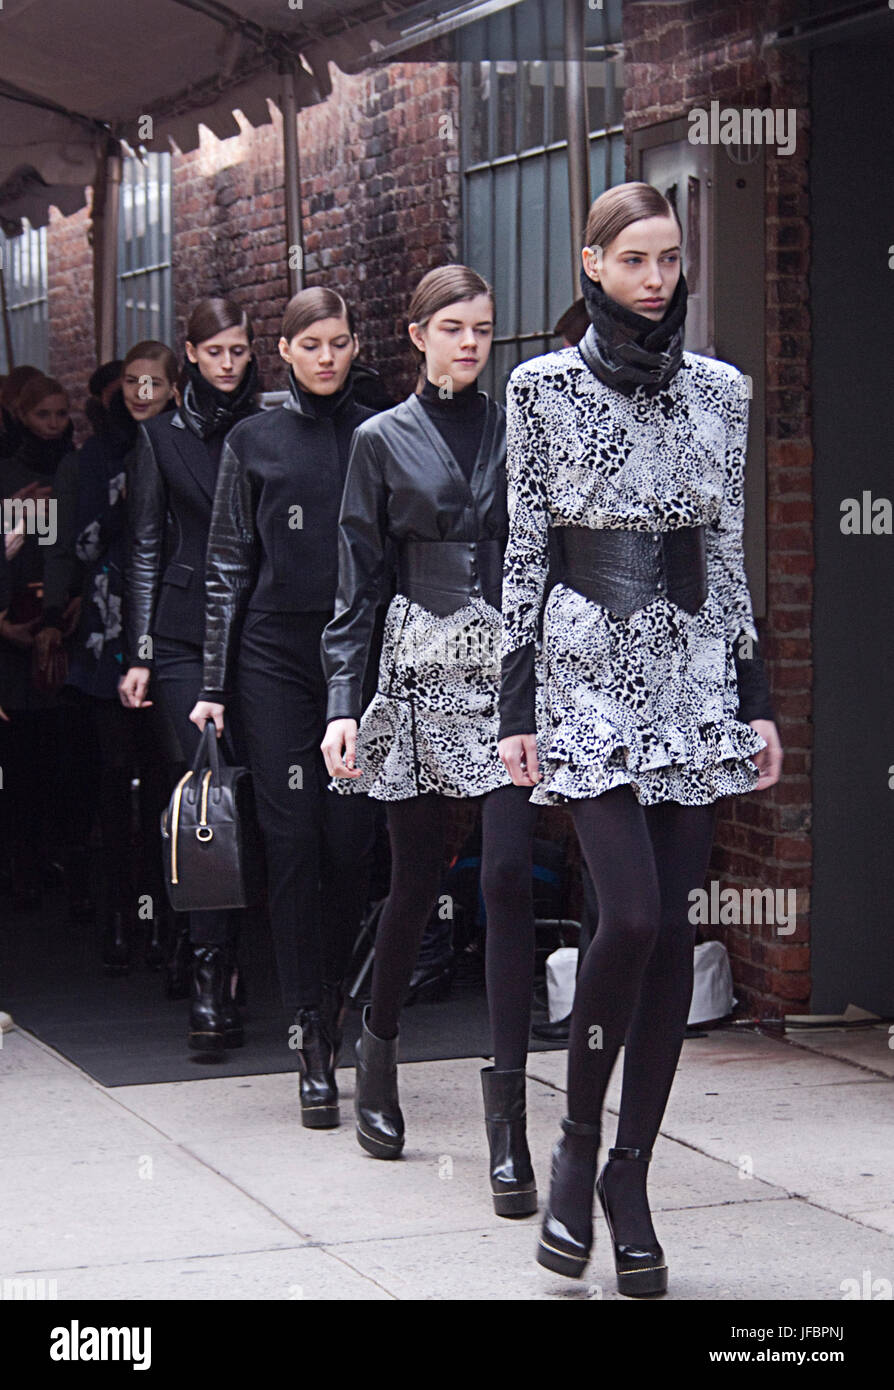 High Fashion models on the Runway - Stock Image